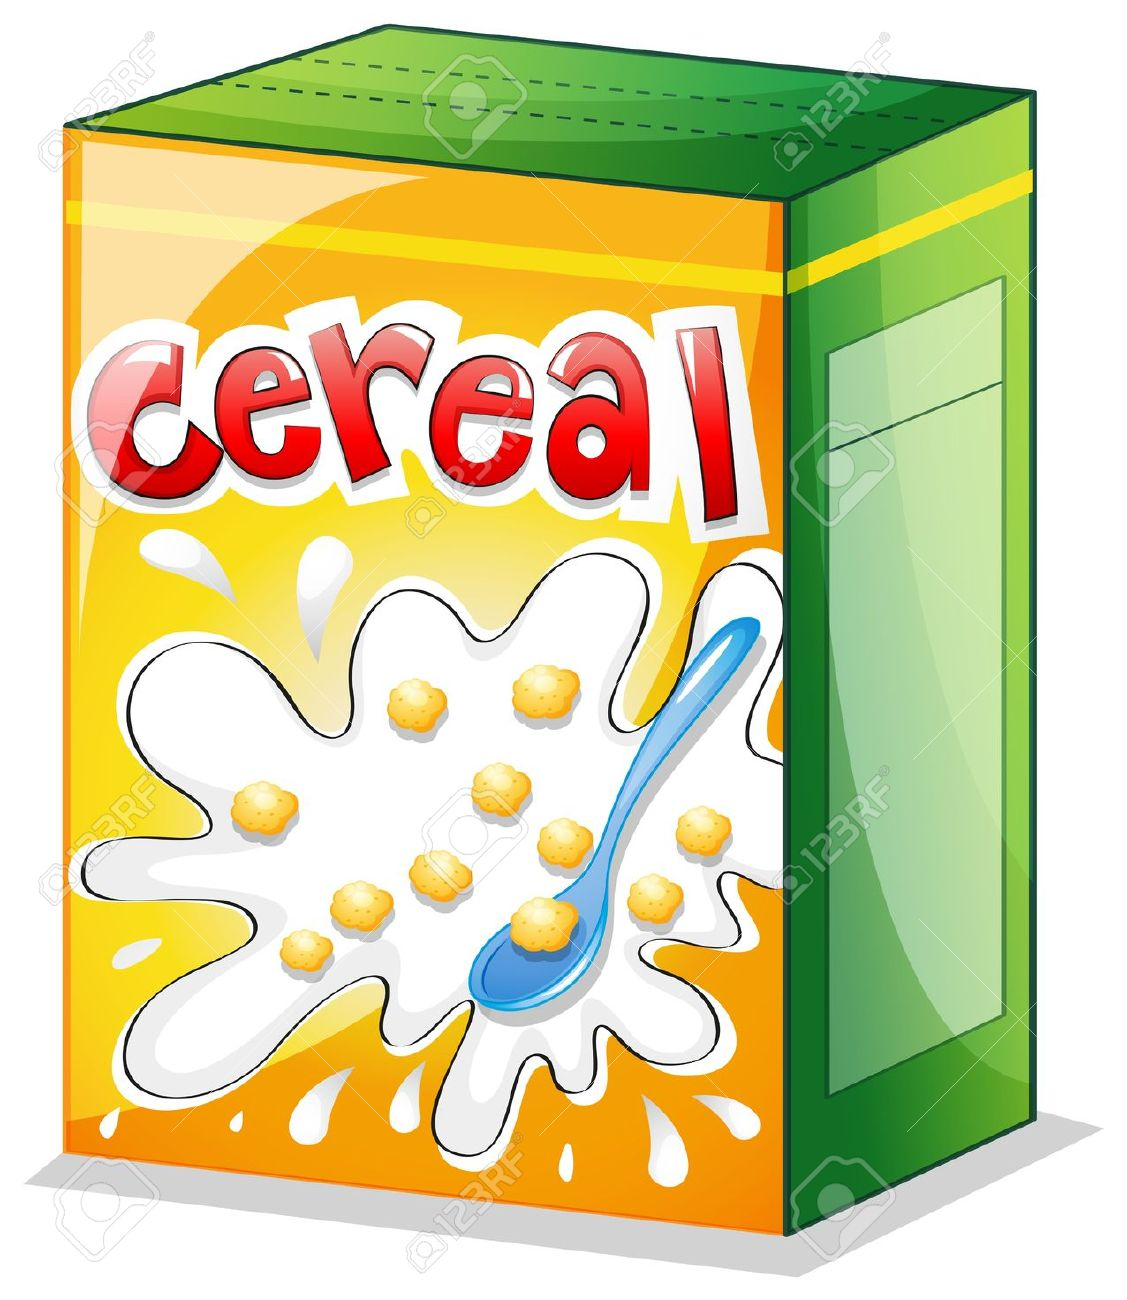 cereal box: Illustration of a .